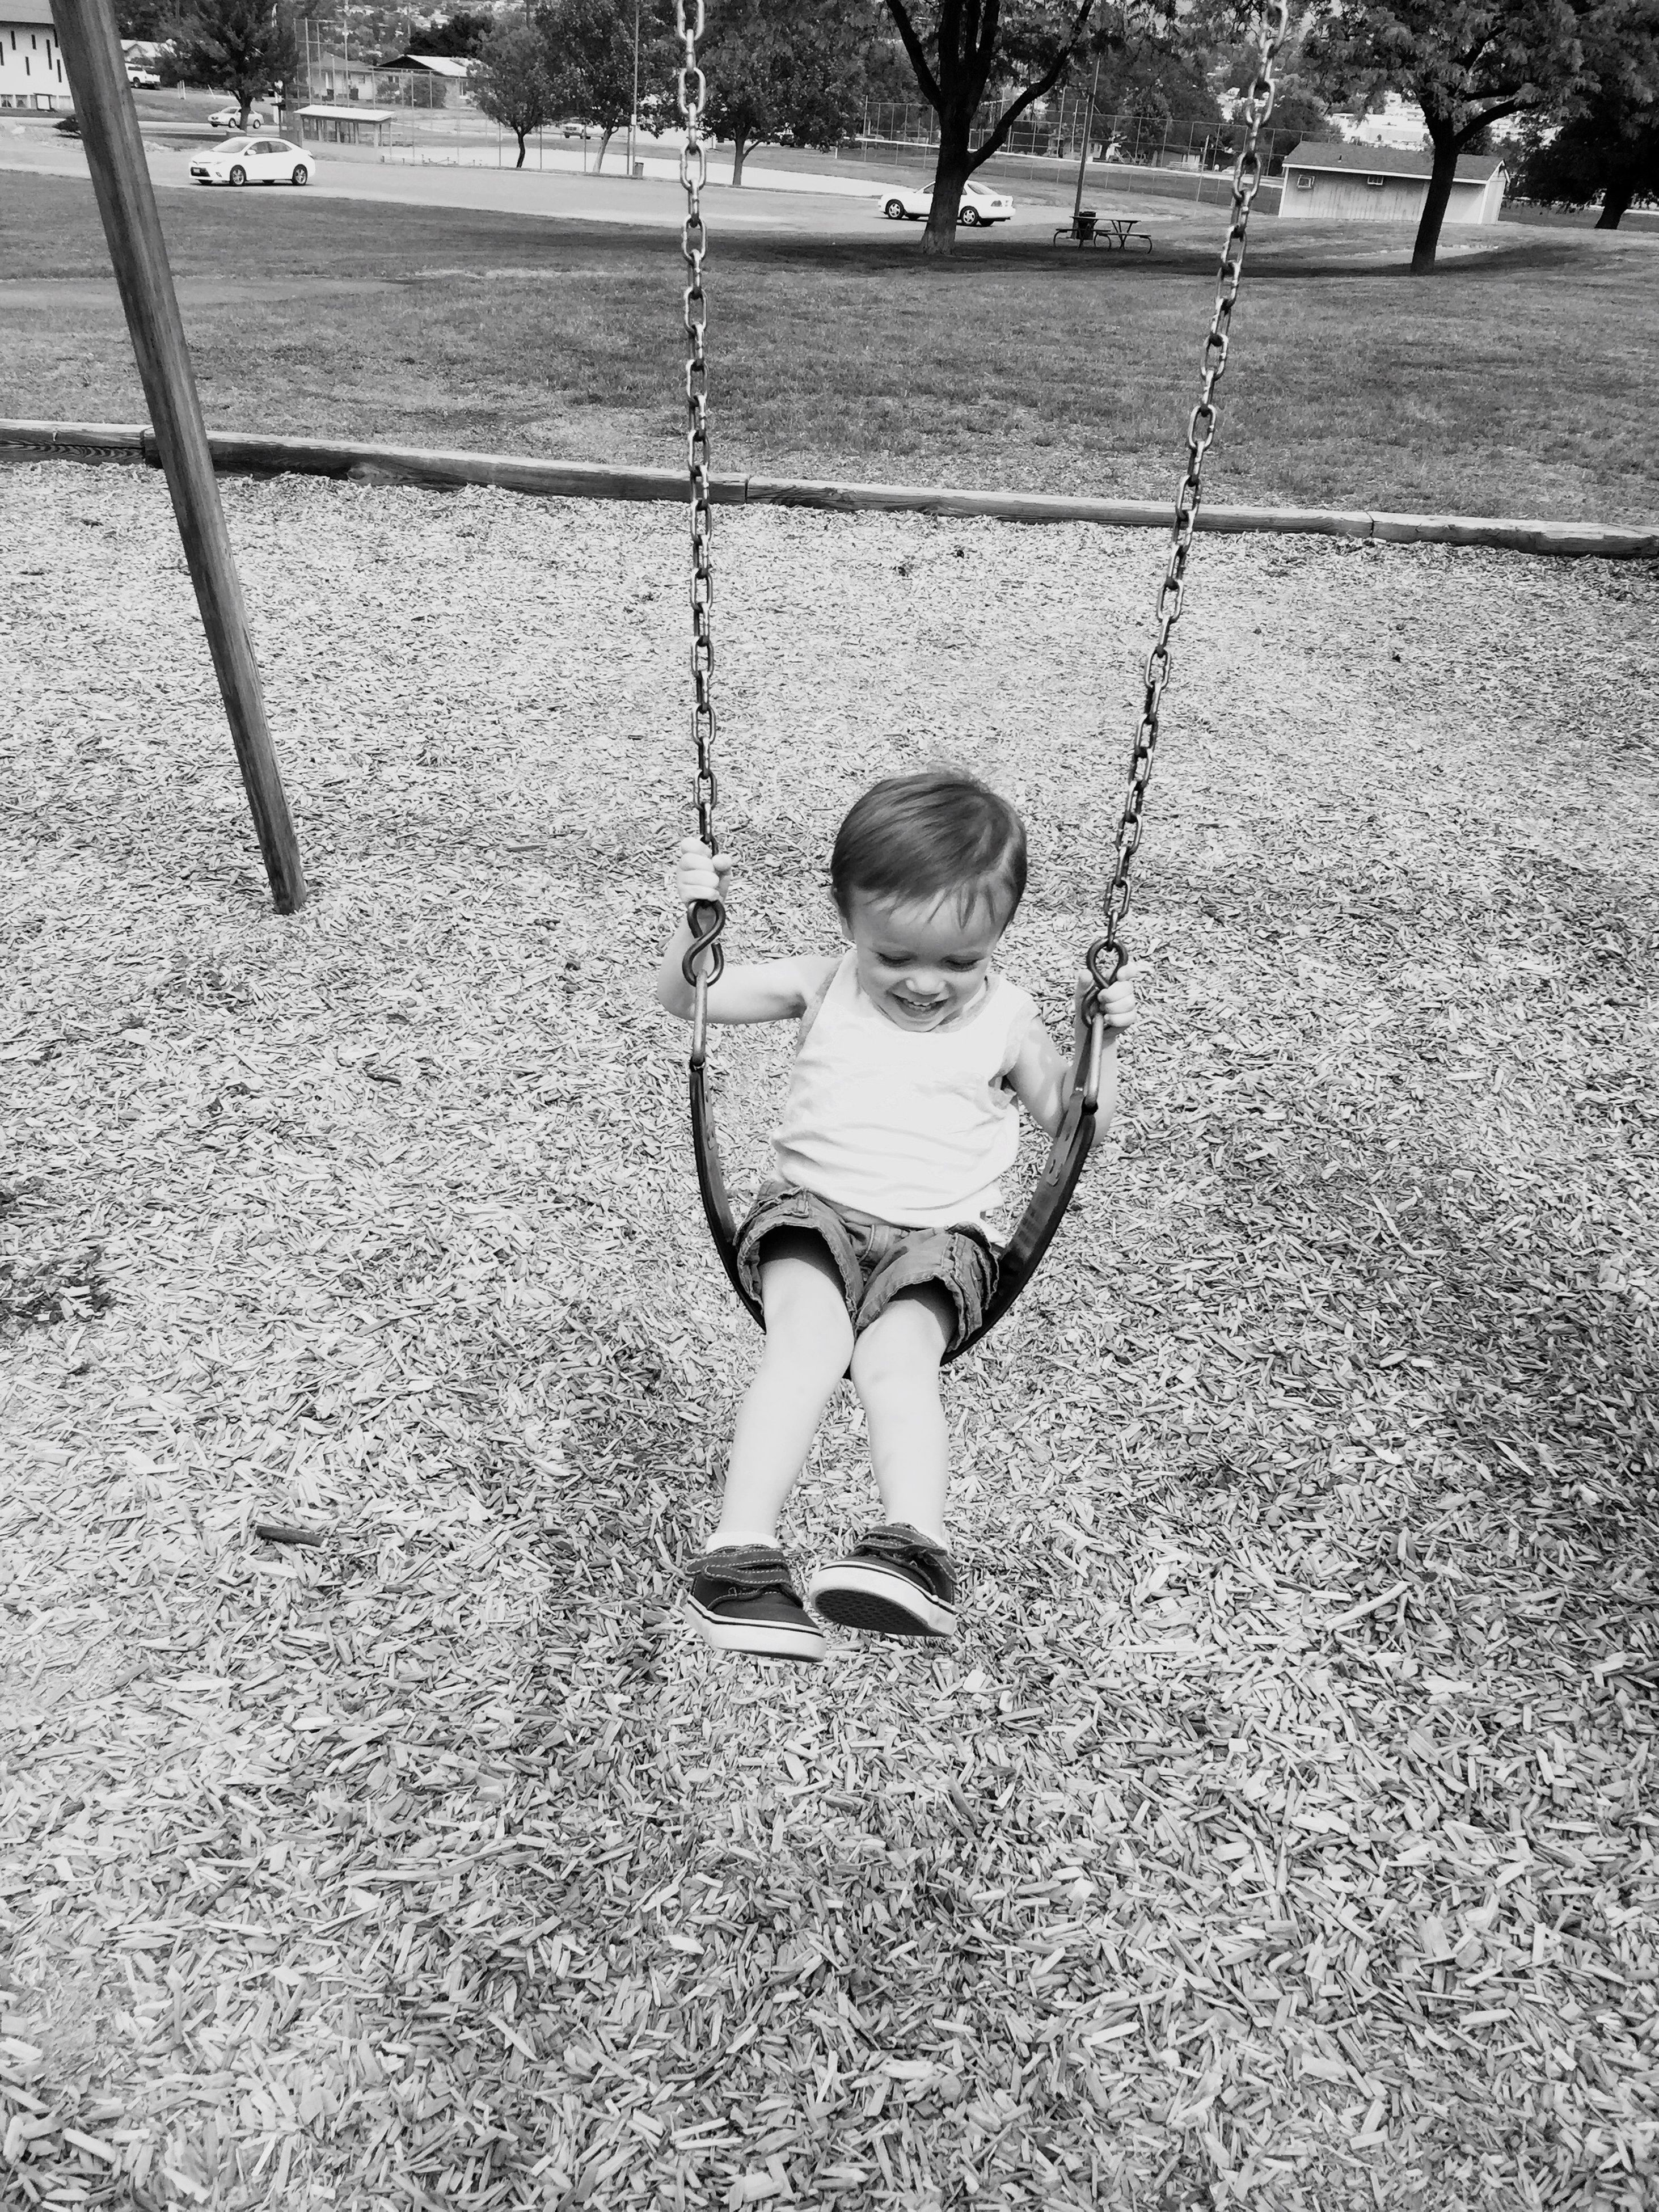 childhood, full length, elementary age, lifestyles, person, casual clothing, boys, girls, leisure activity, innocence, cute, high angle view, street, portrait, looking at camera, playing, park - man made space, front view